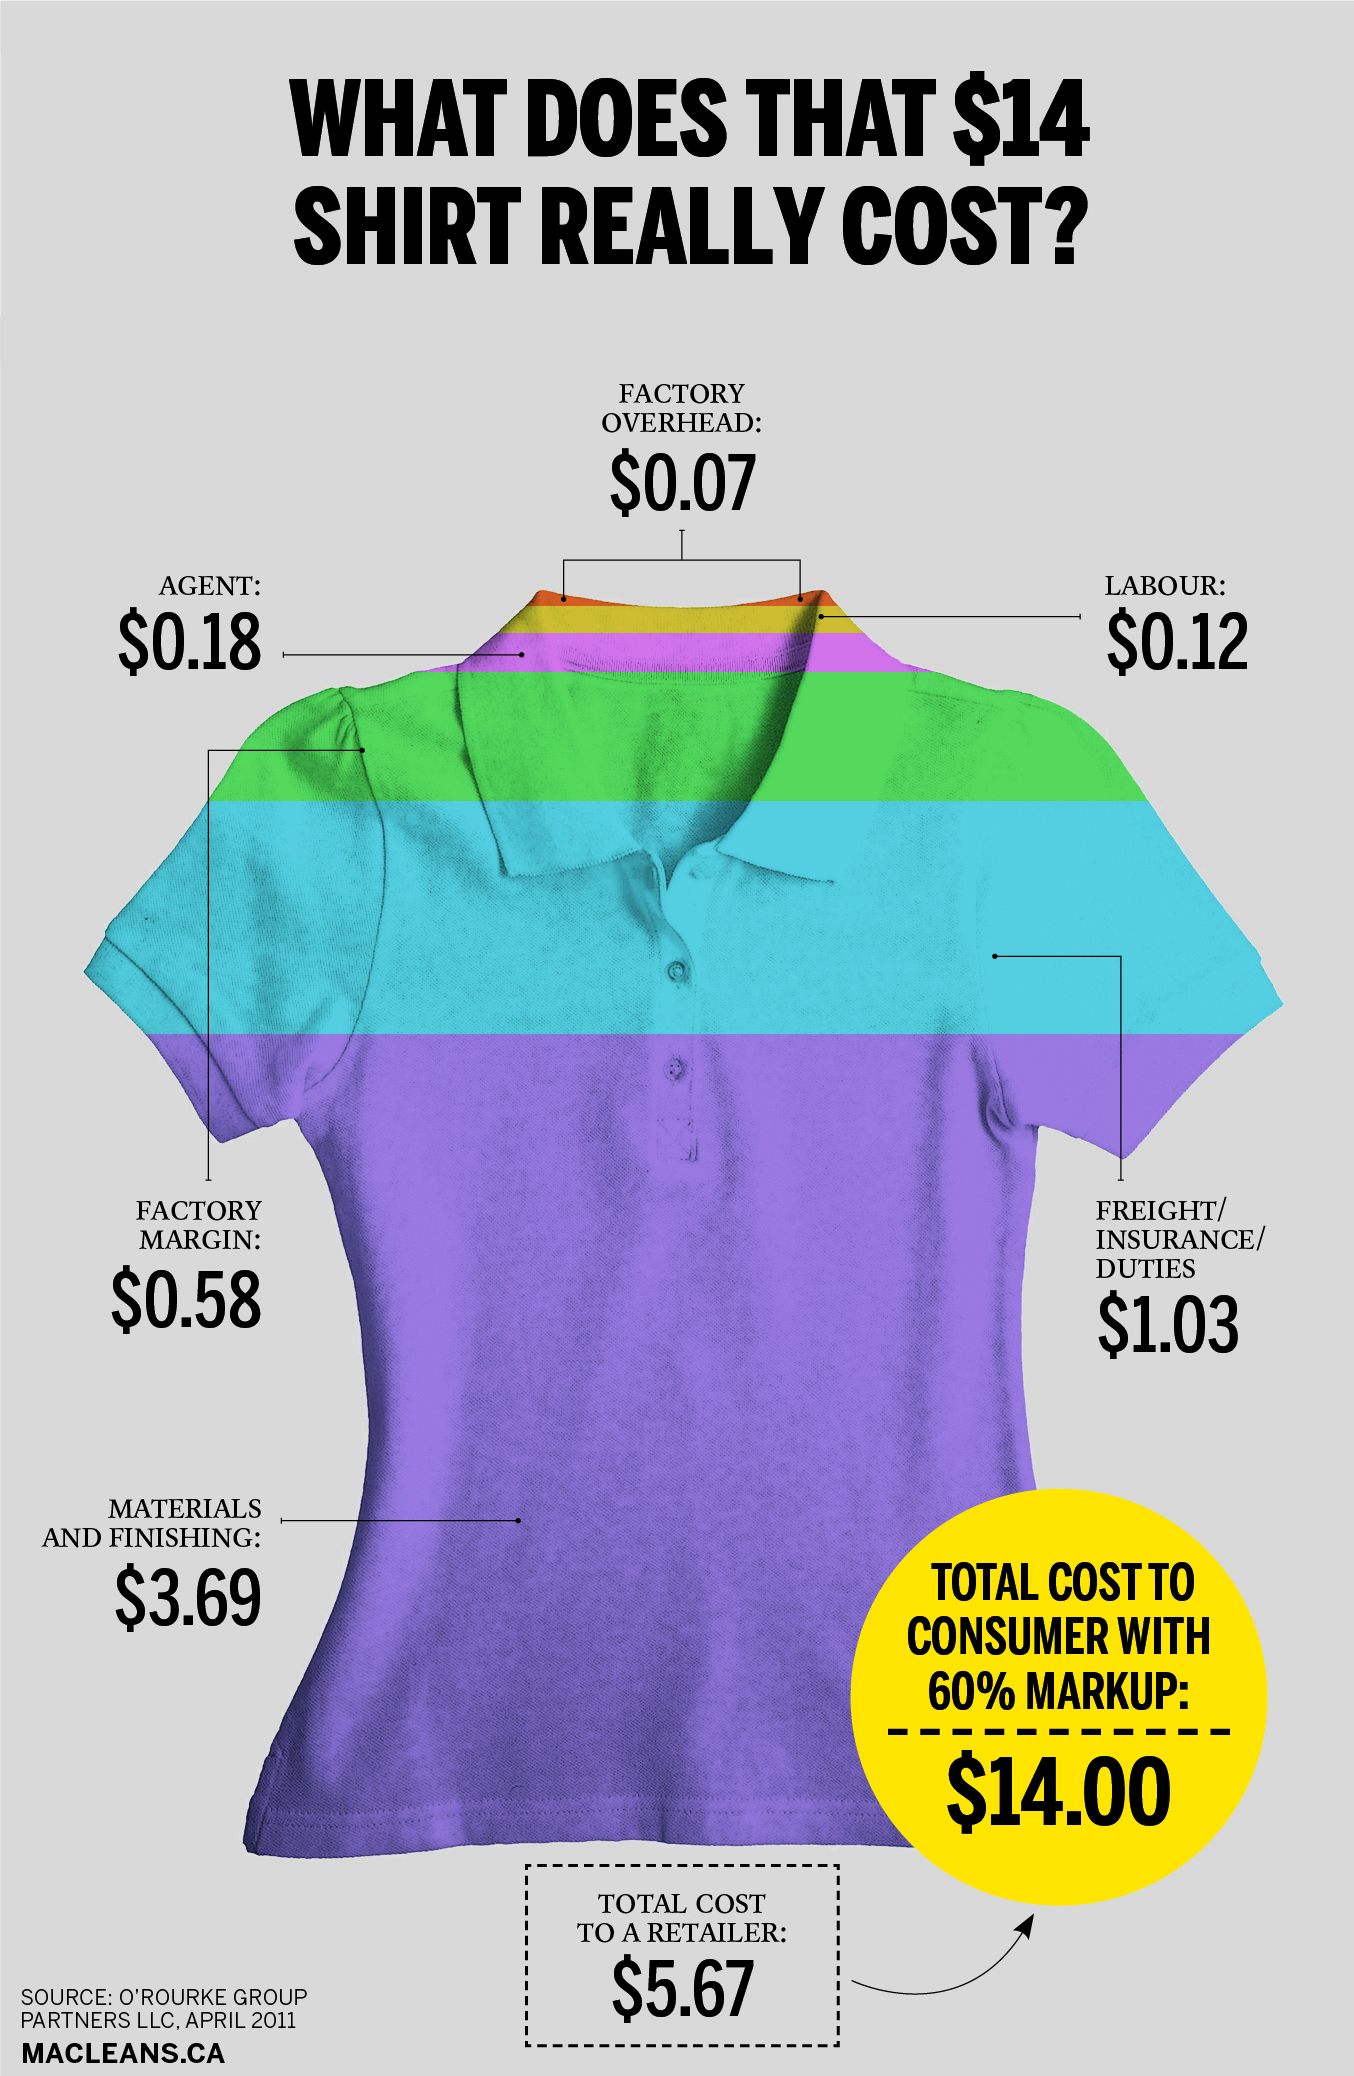 What does that $14 shirt really cost?